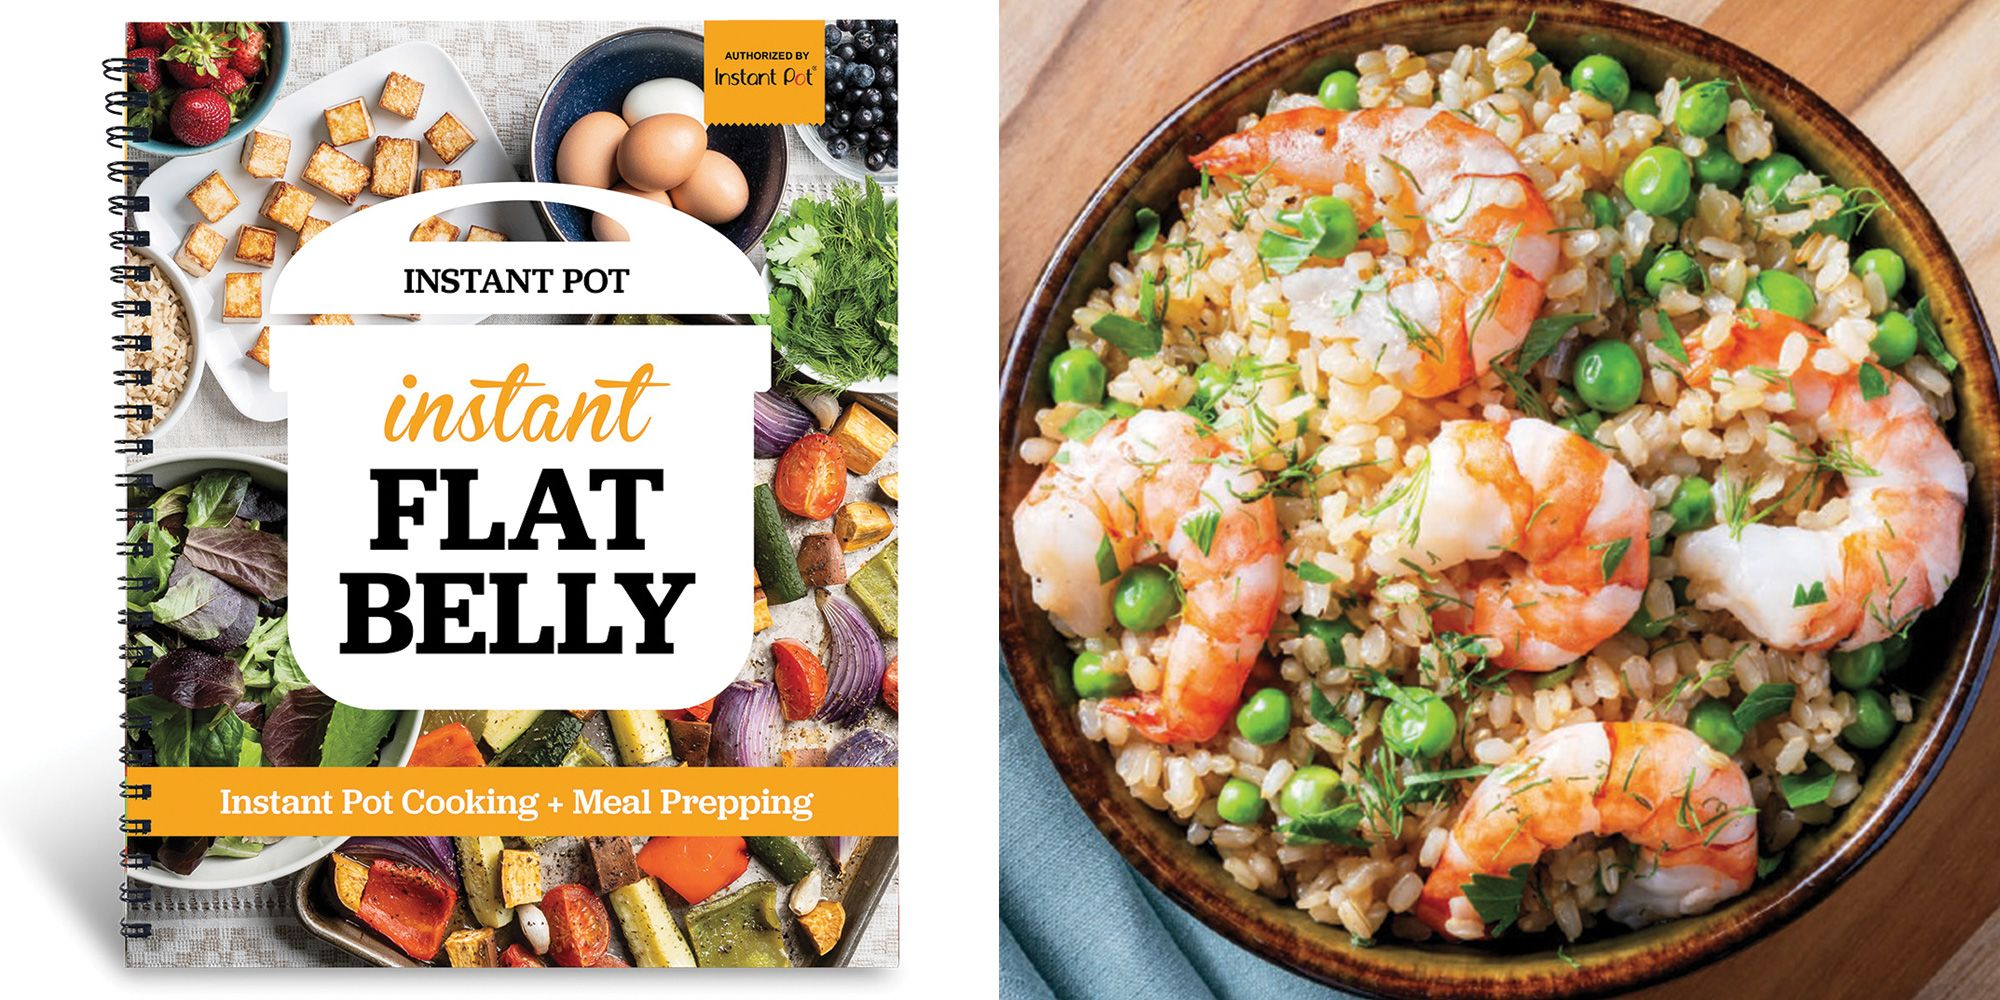 This New Instant Pot Cookbook Makes Losing Weight Damn Easy